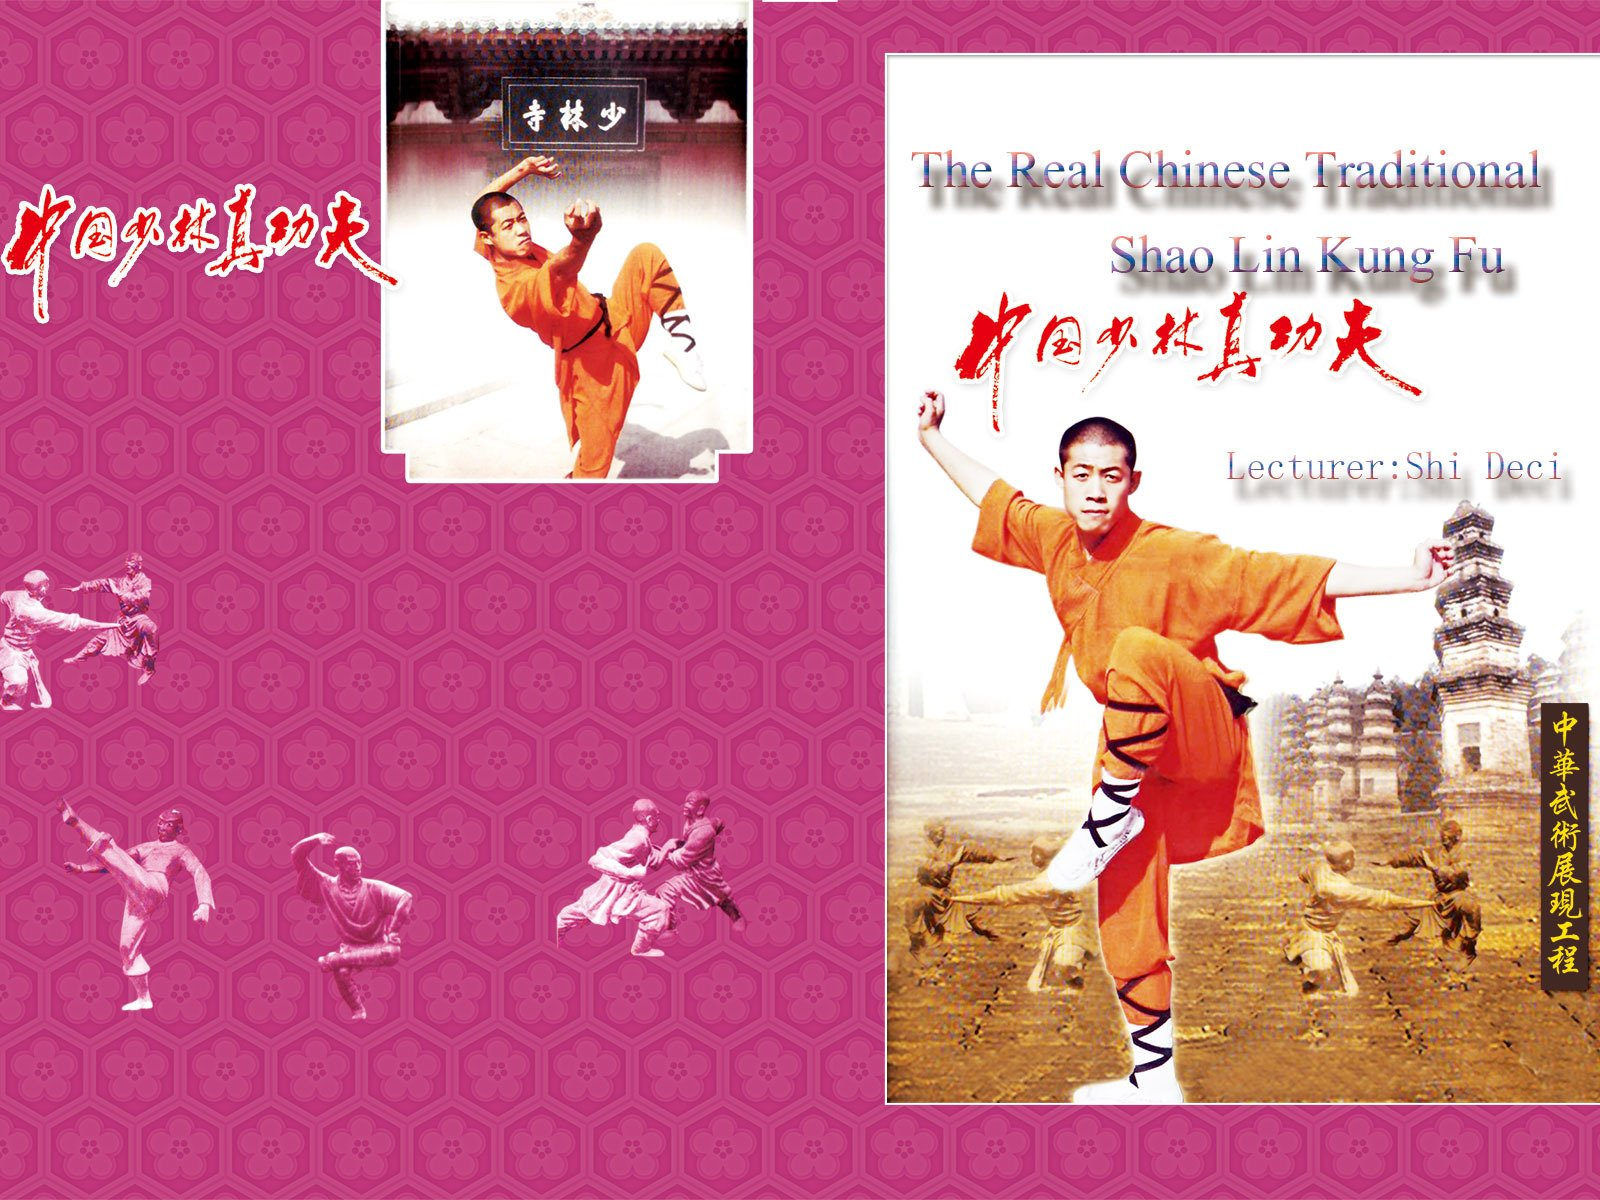 The Real Chinese Traditional Shao Lin Kung Fu(Lecturer:Shi Deci) - Season 1